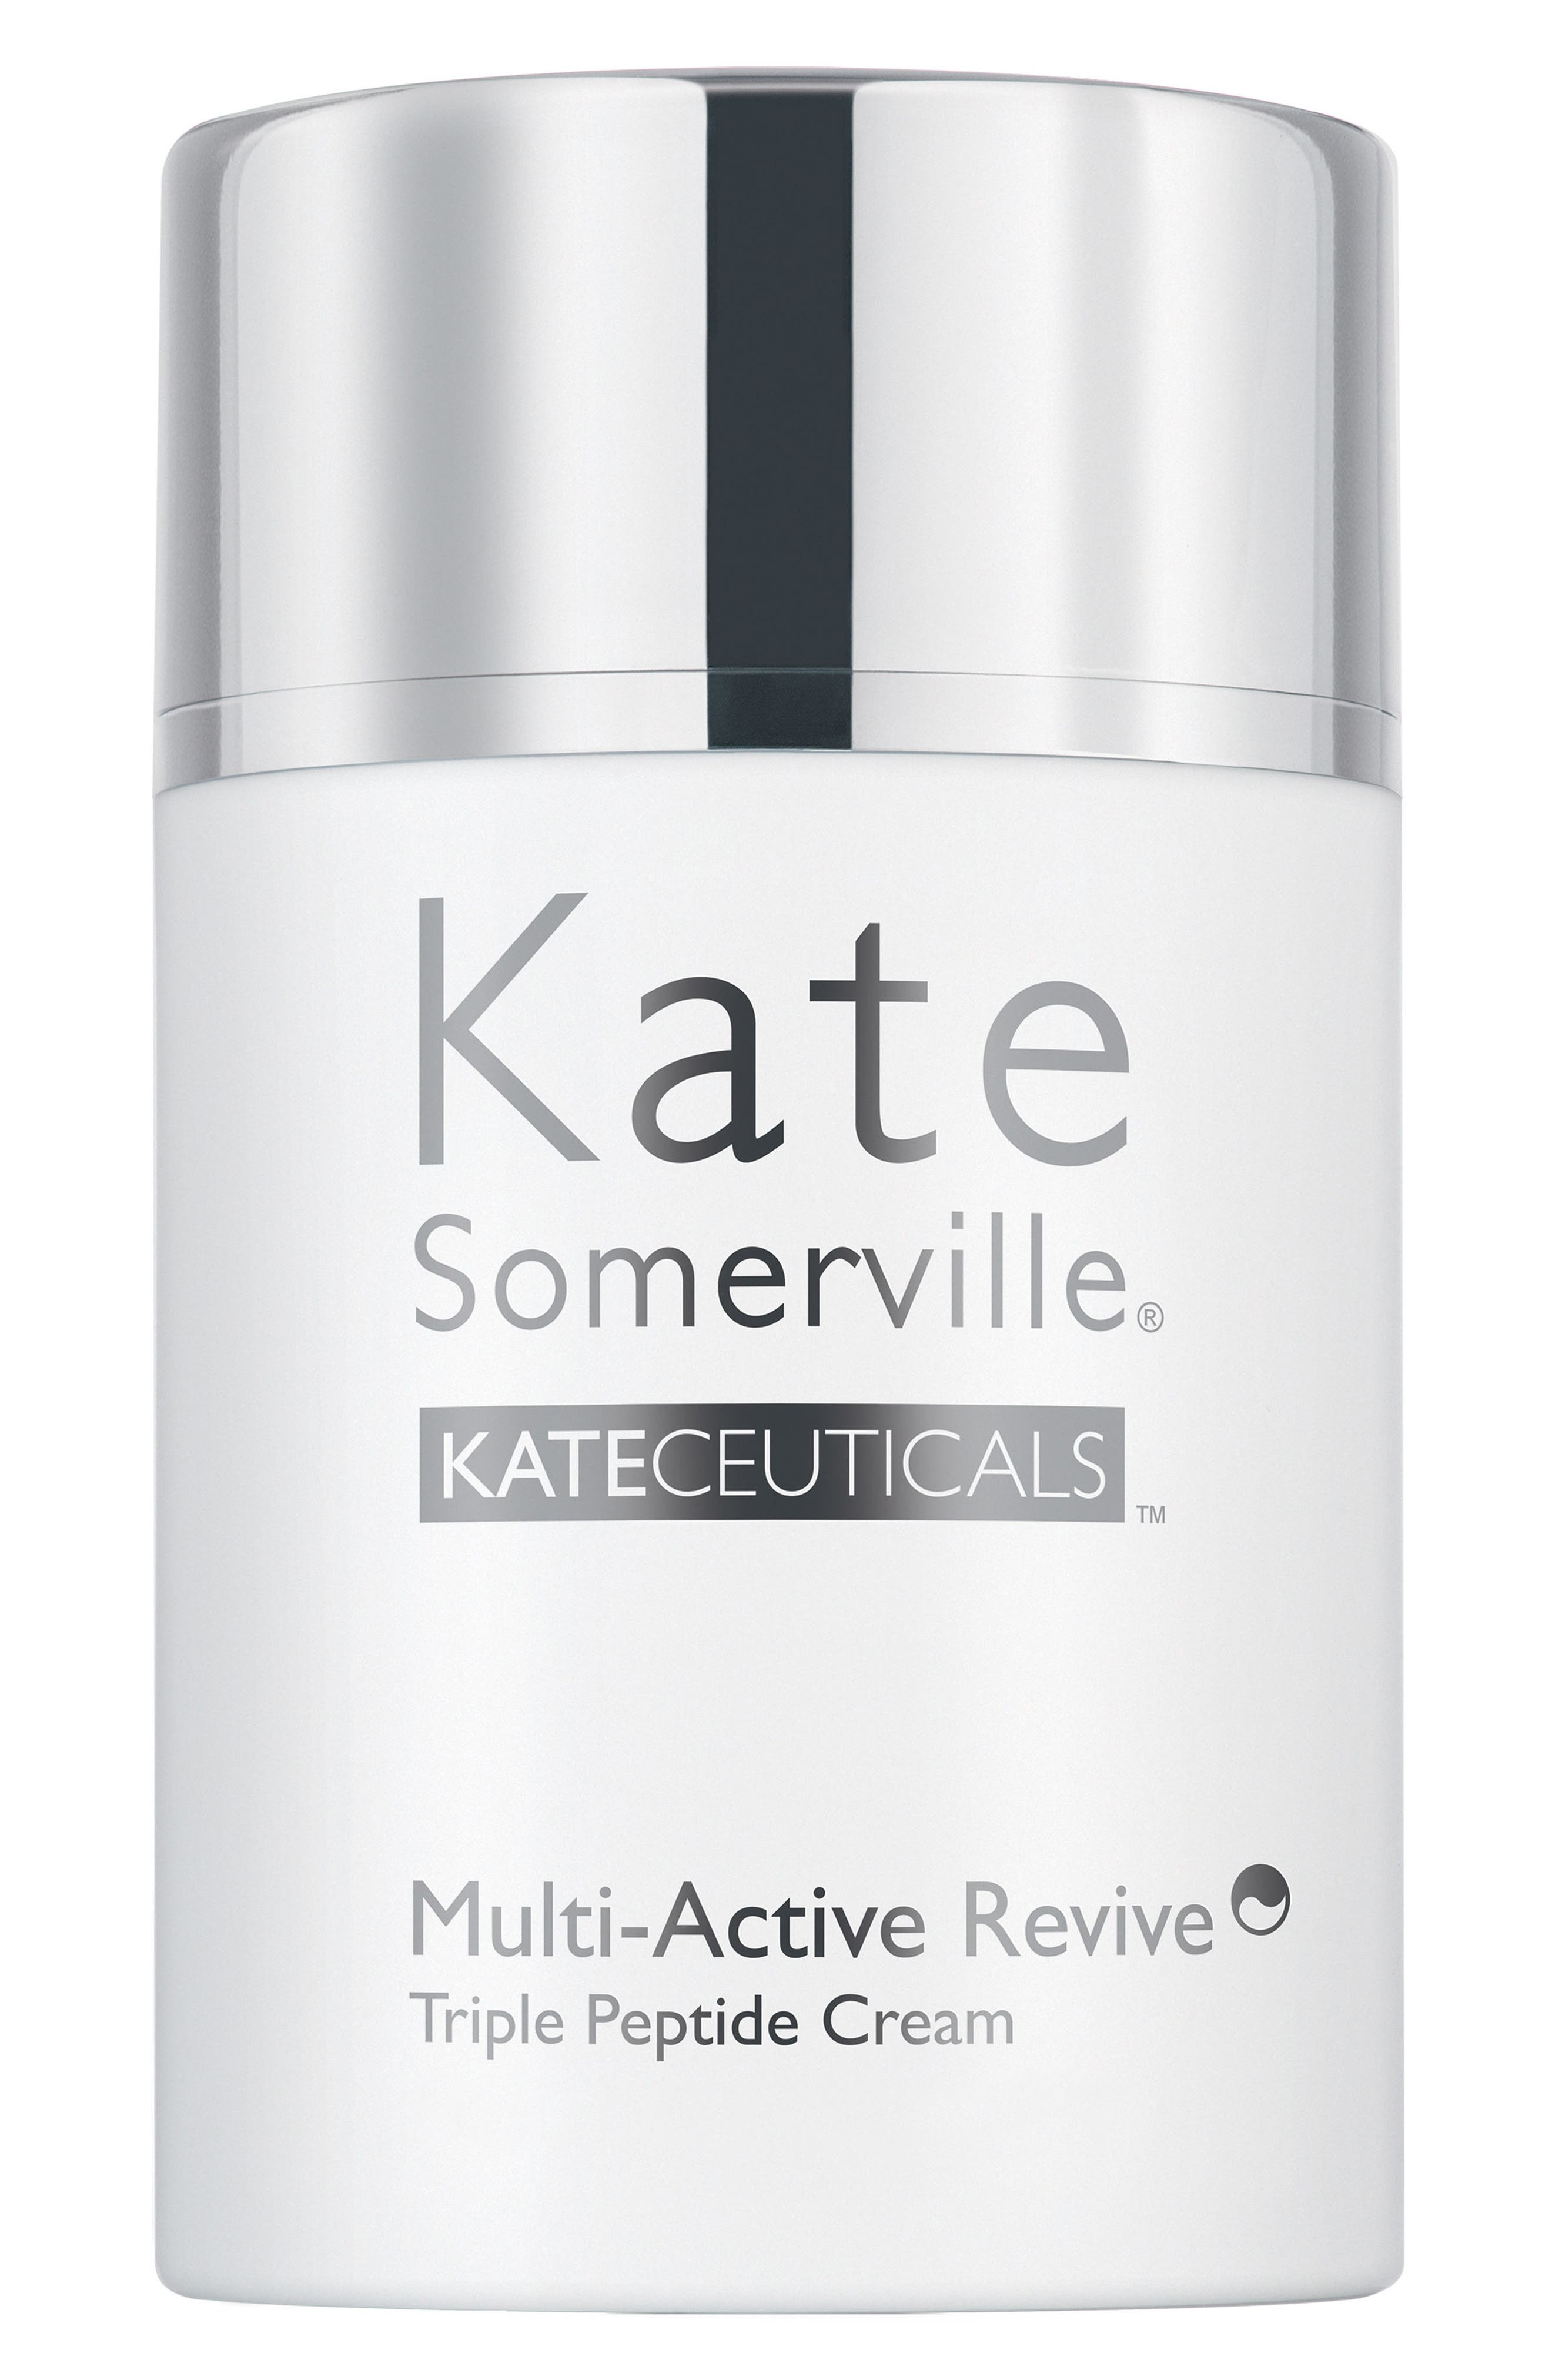 Kate Somerville® 'KateCeuticals™' Mutli-Active Revive Triple Peptide Cream